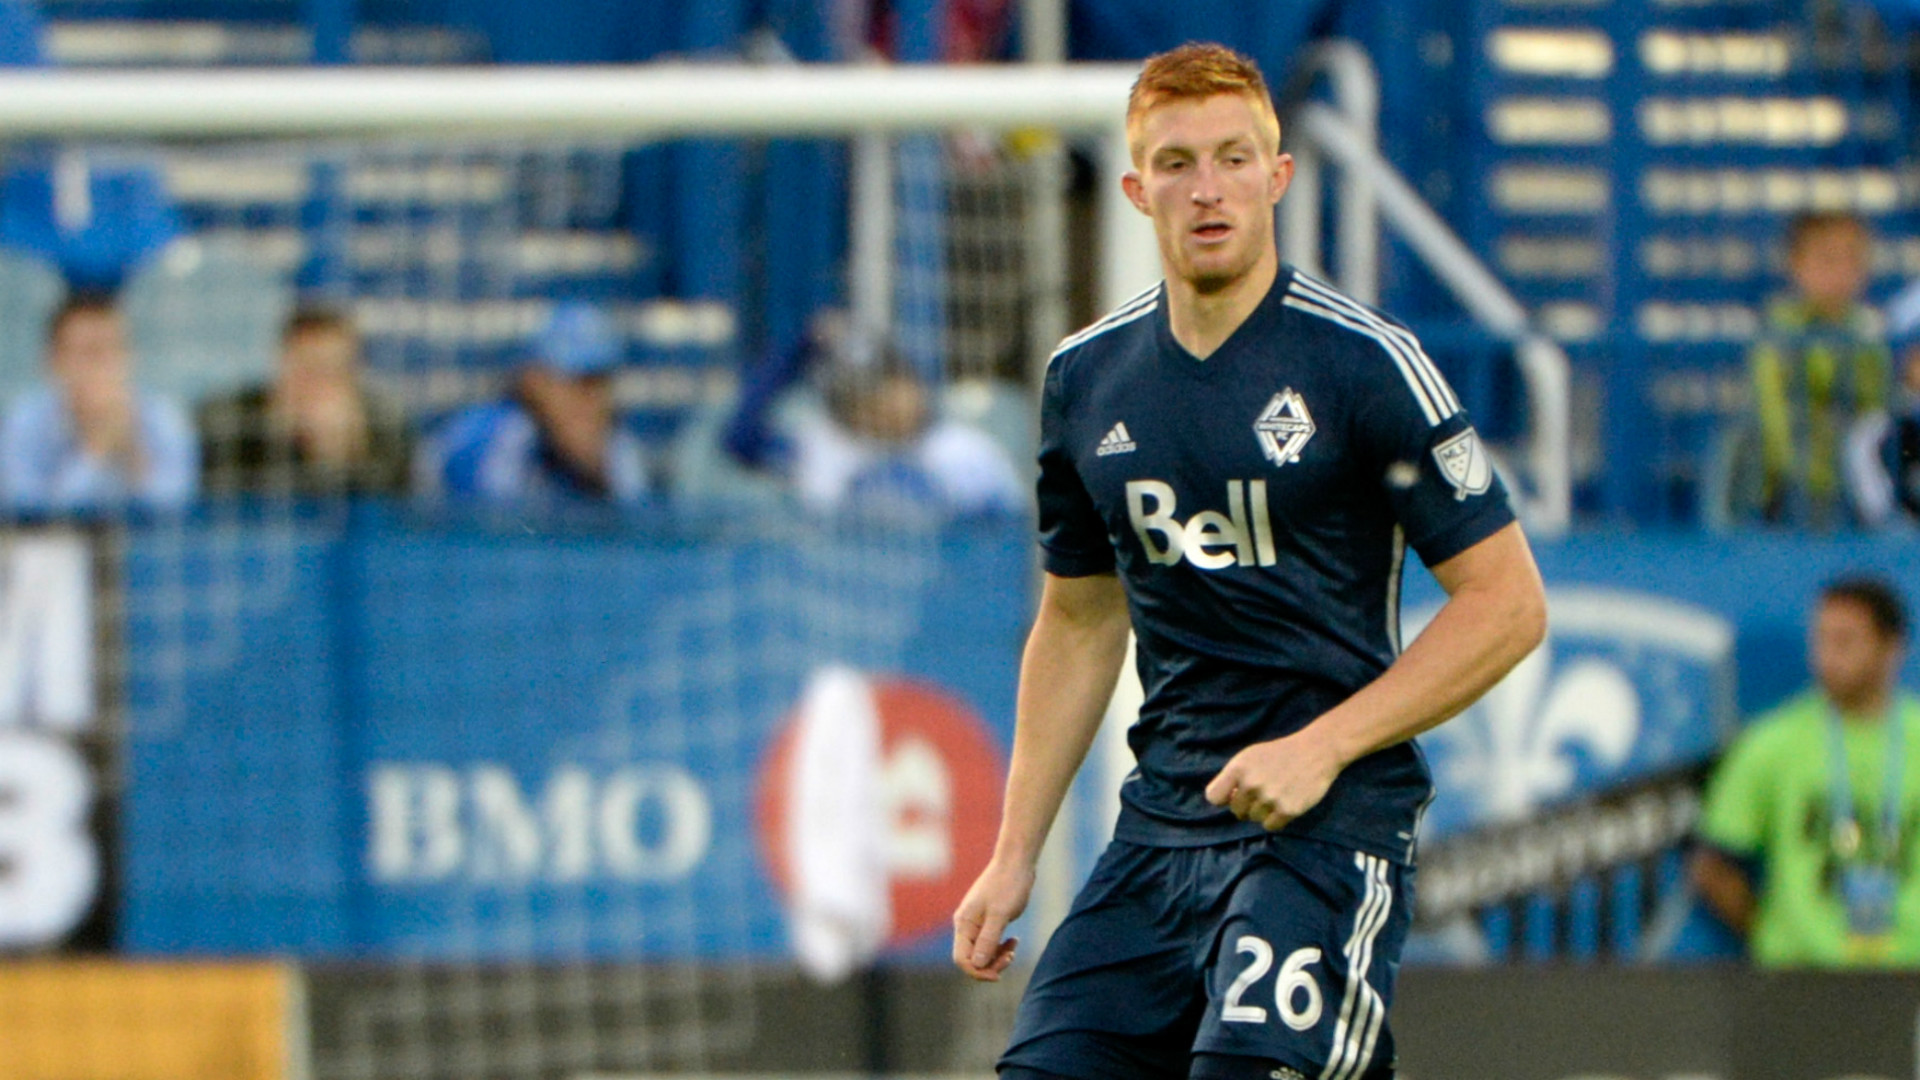 Tim-parker-vancouver-whitecaps-mls-20150603_1lyns122xtcfq1l8gign8os208